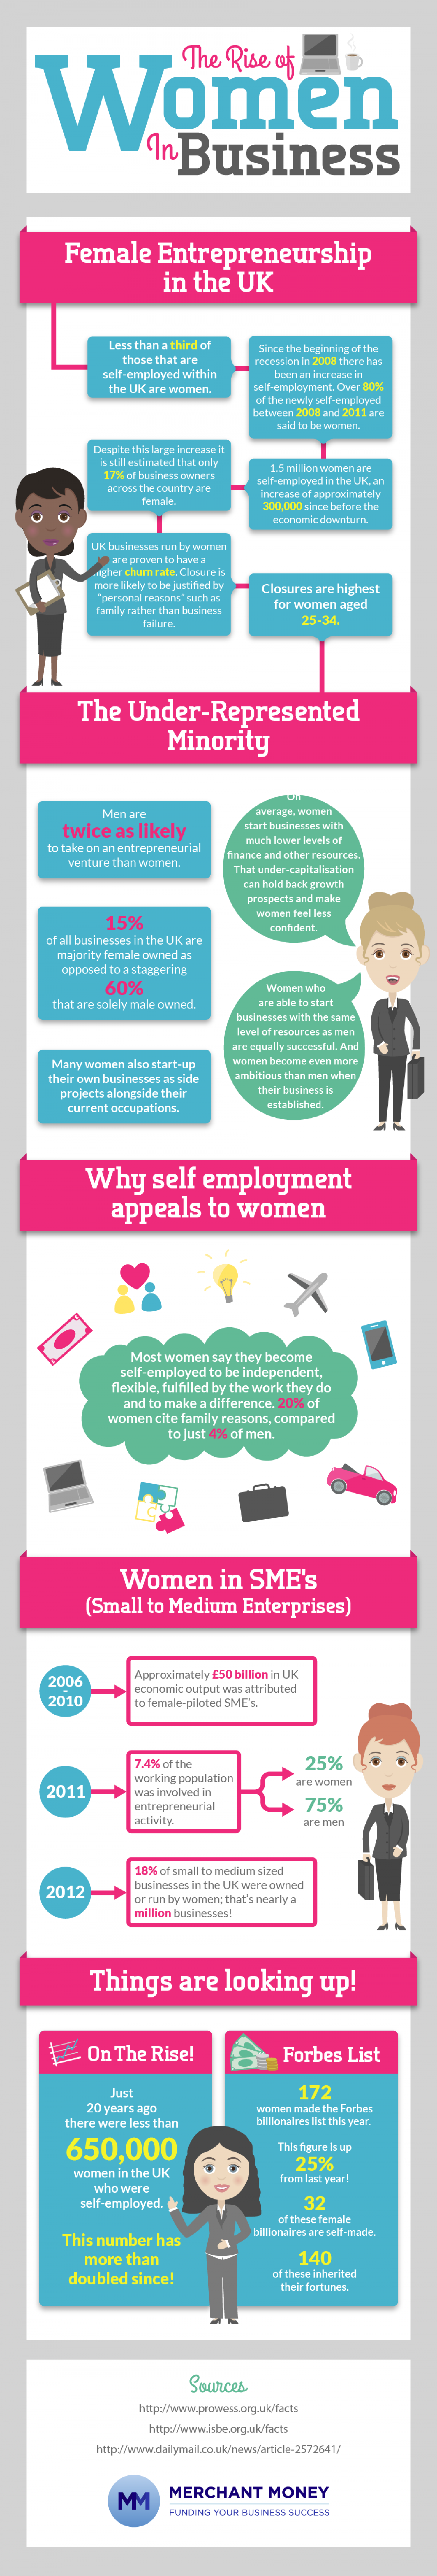 The Rise Of Women In Business Infographic